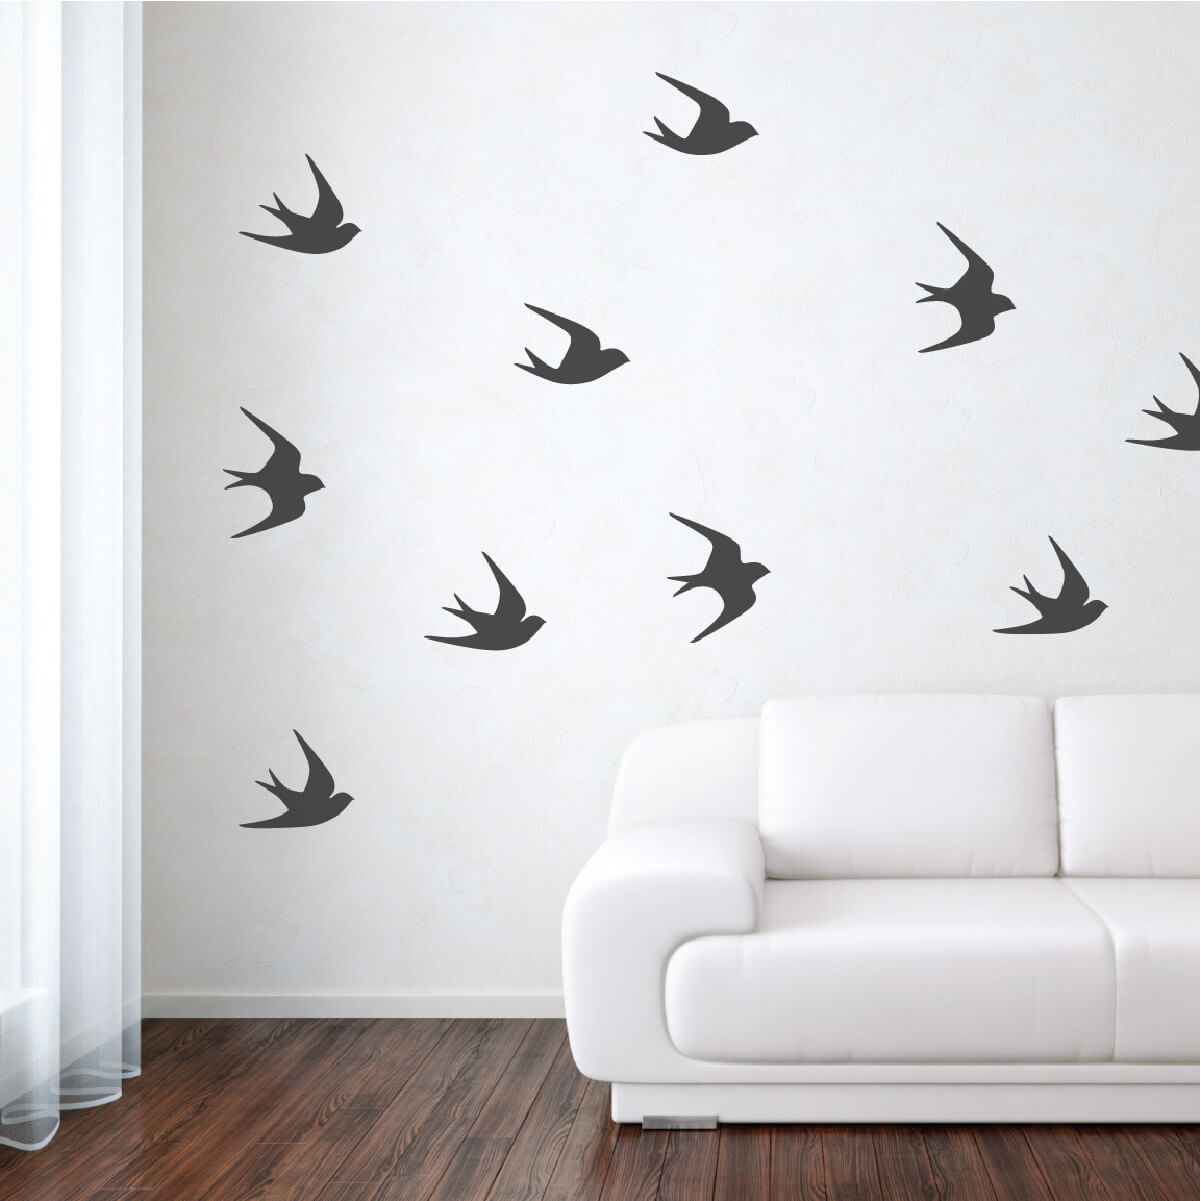 Black and white living room flock. Source https://wallsneedlove.com/collections/design-packs